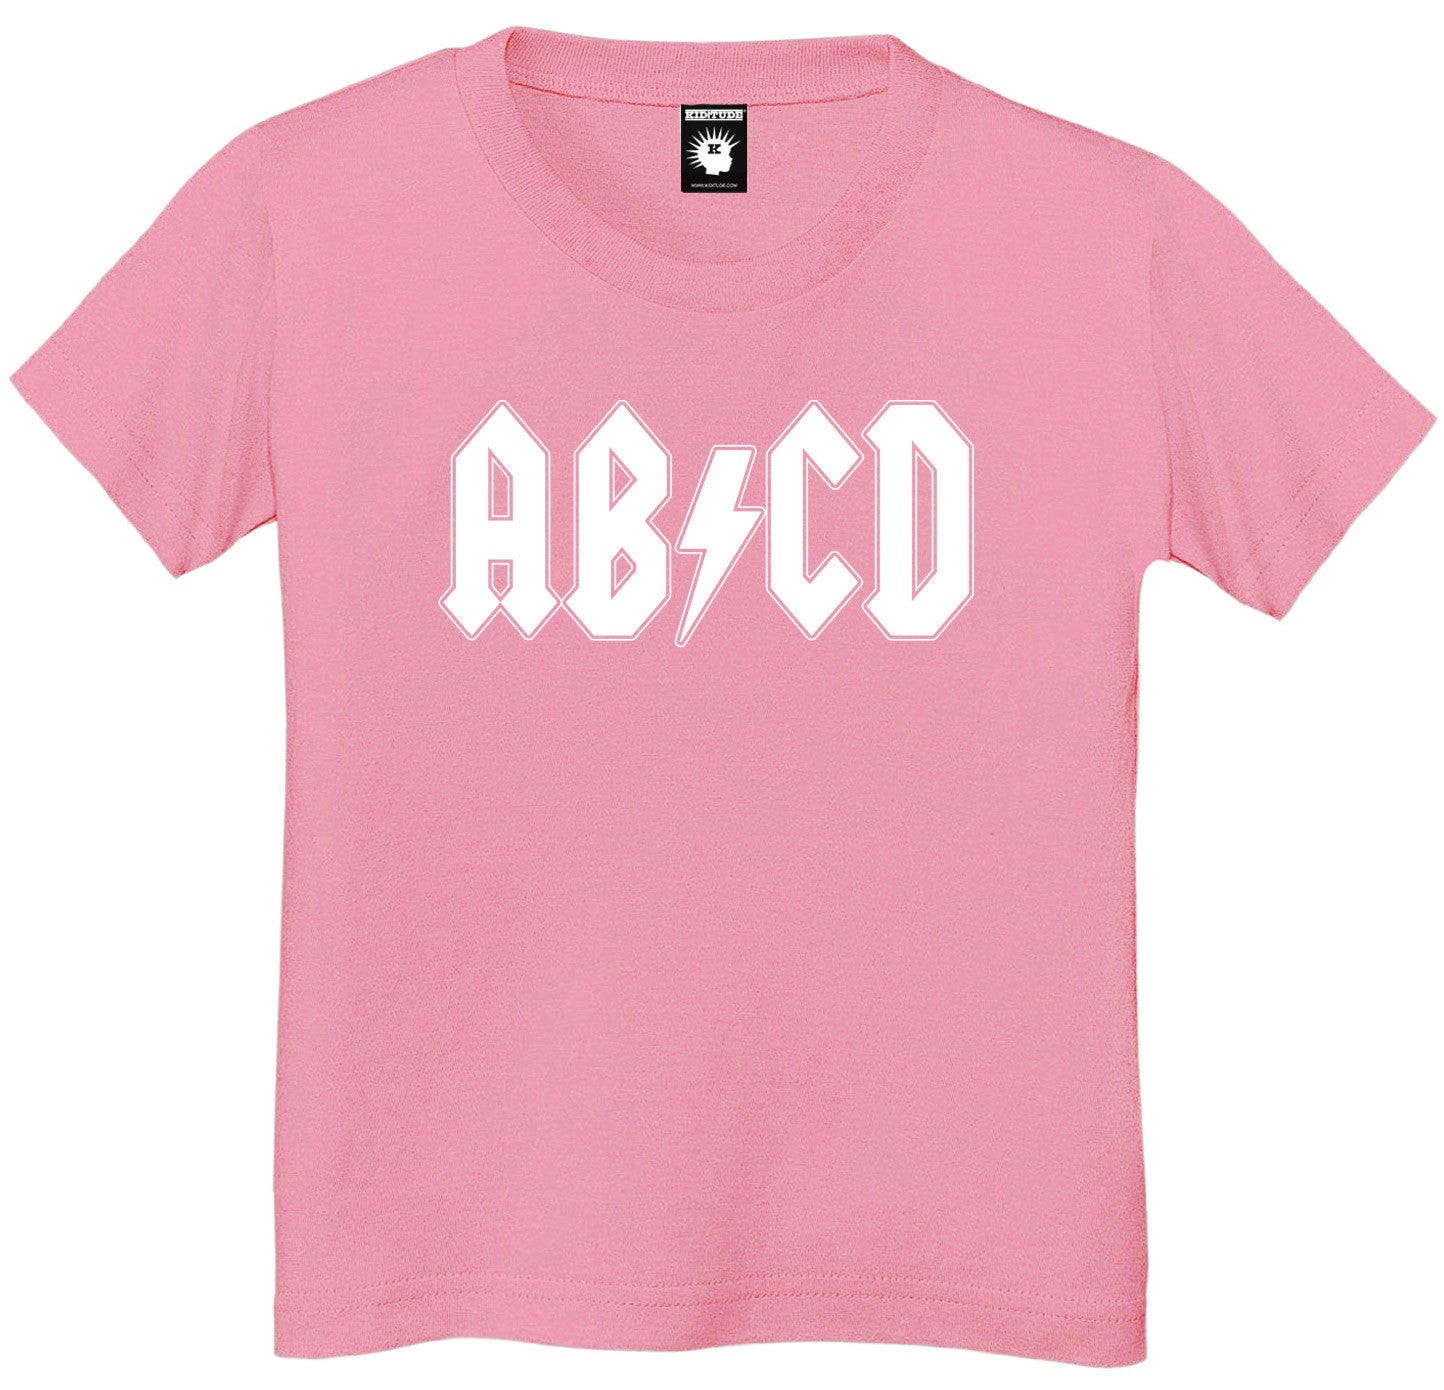 ab cd shirts adults